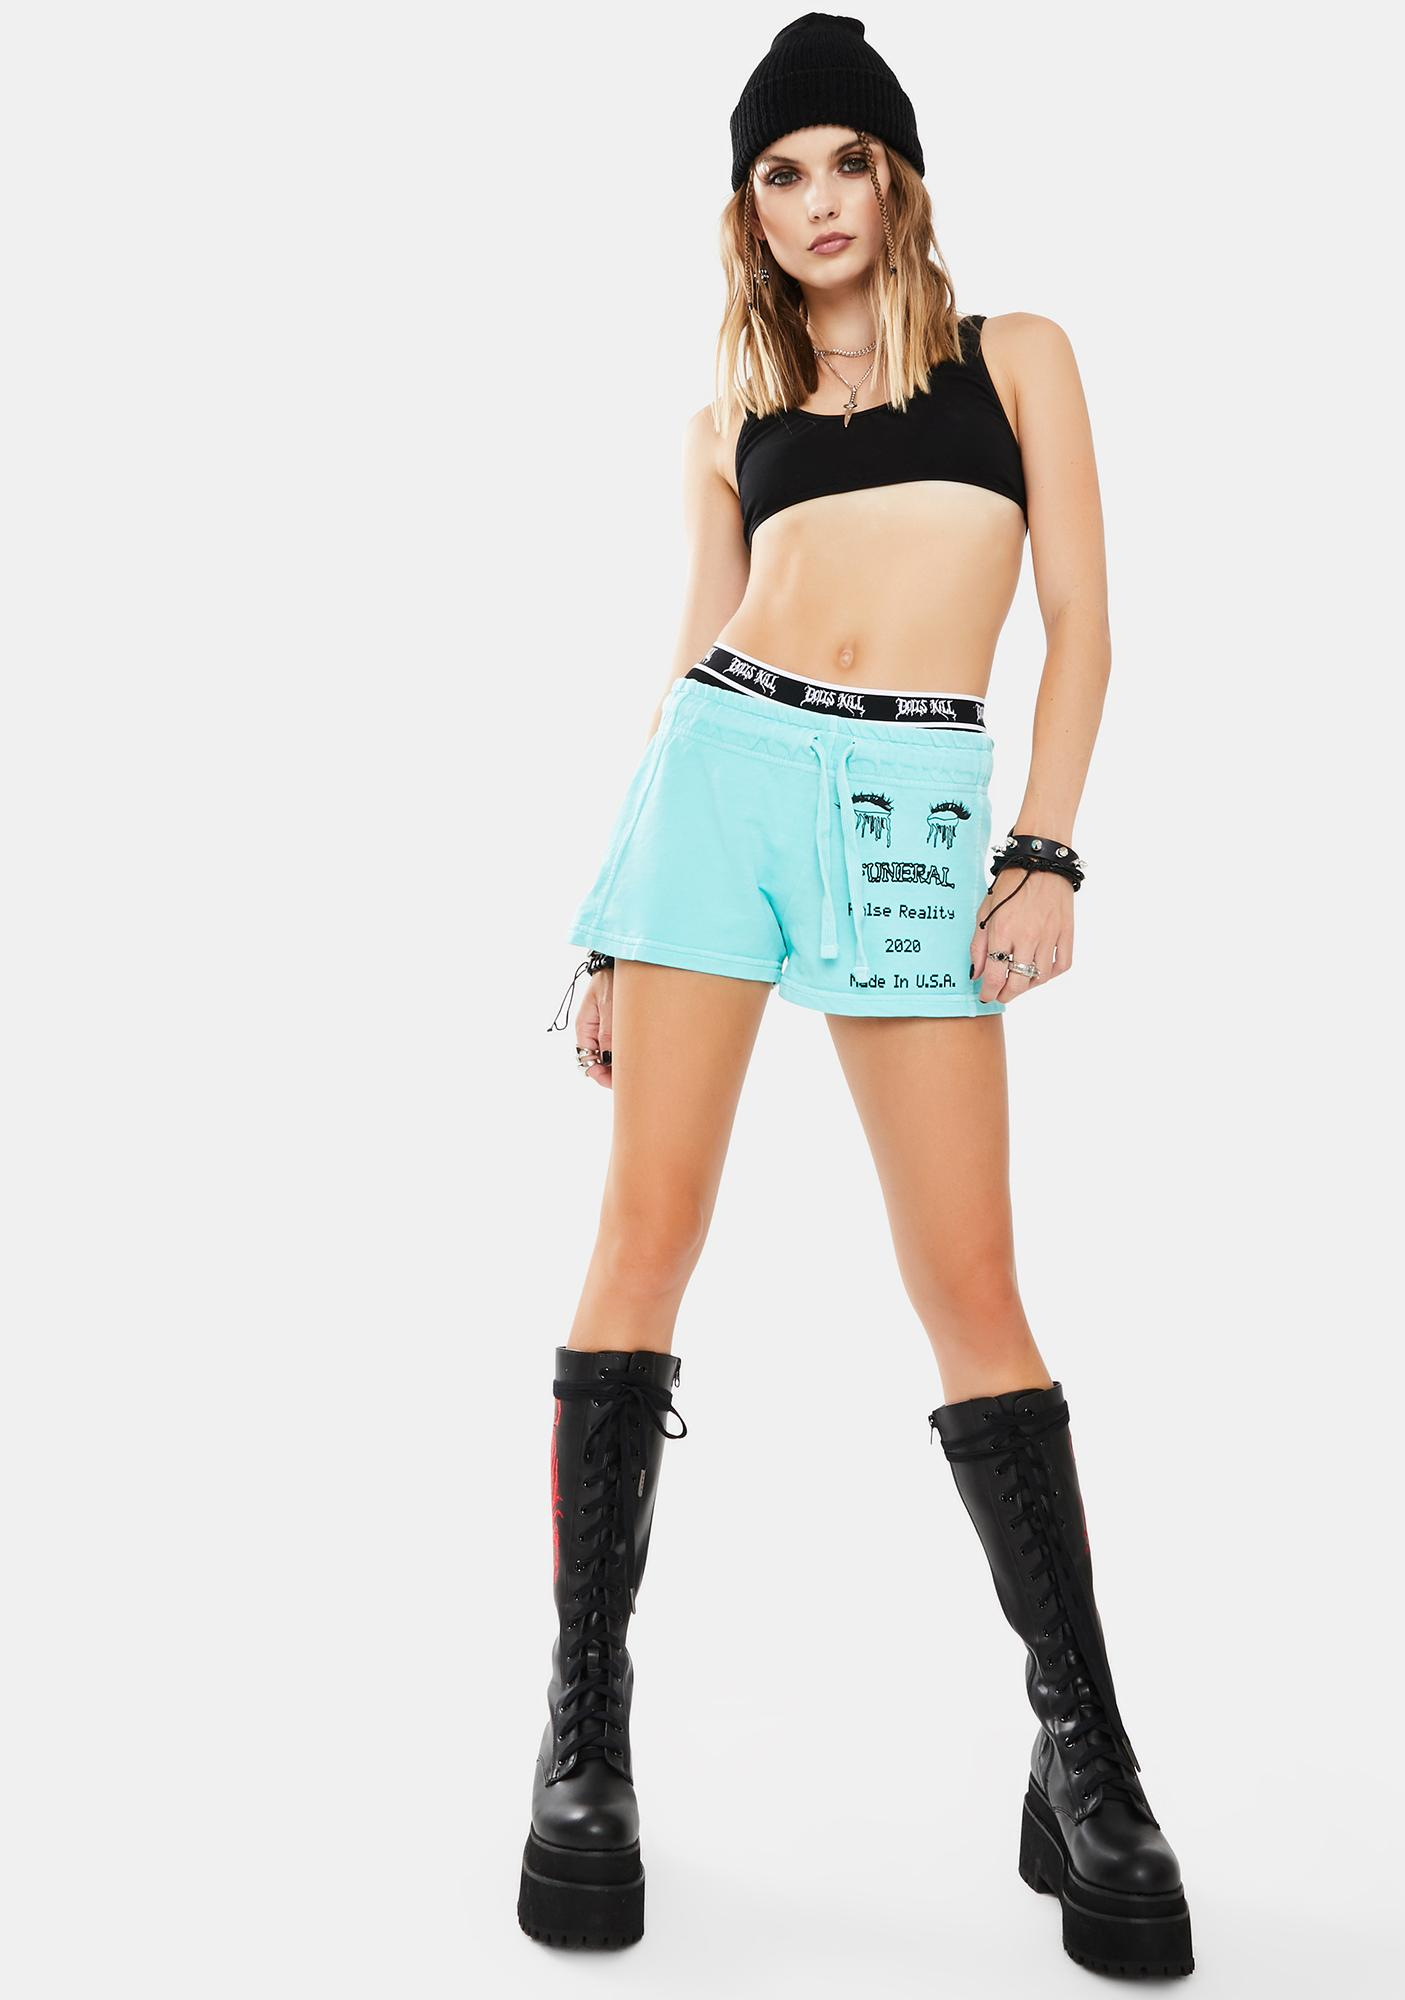 Funeral Mint 2020 Lounge Shorts